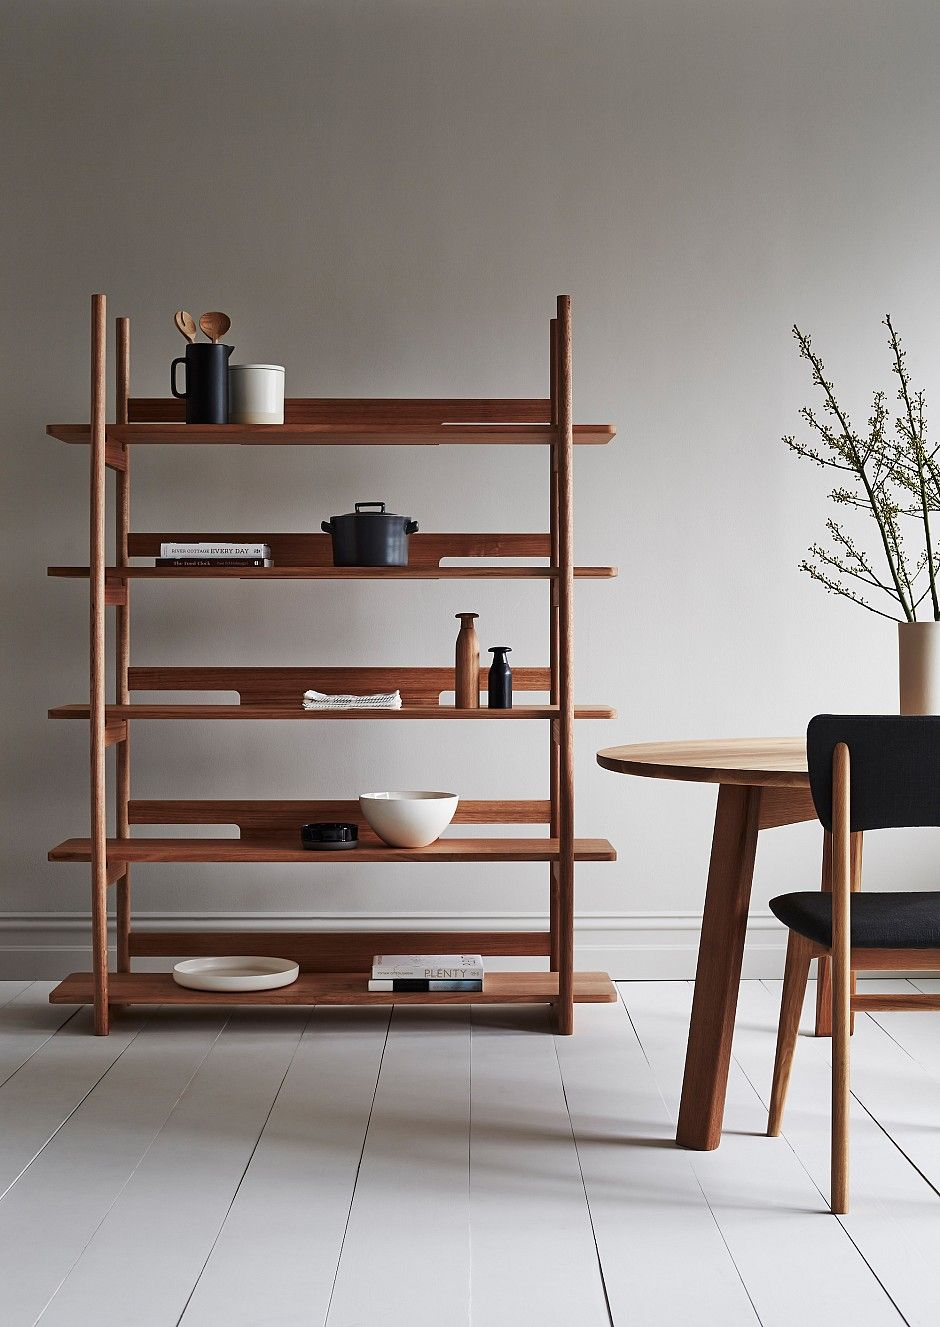 Pingl par inside out sur shelves storage pinterest for Minimalisme rangement